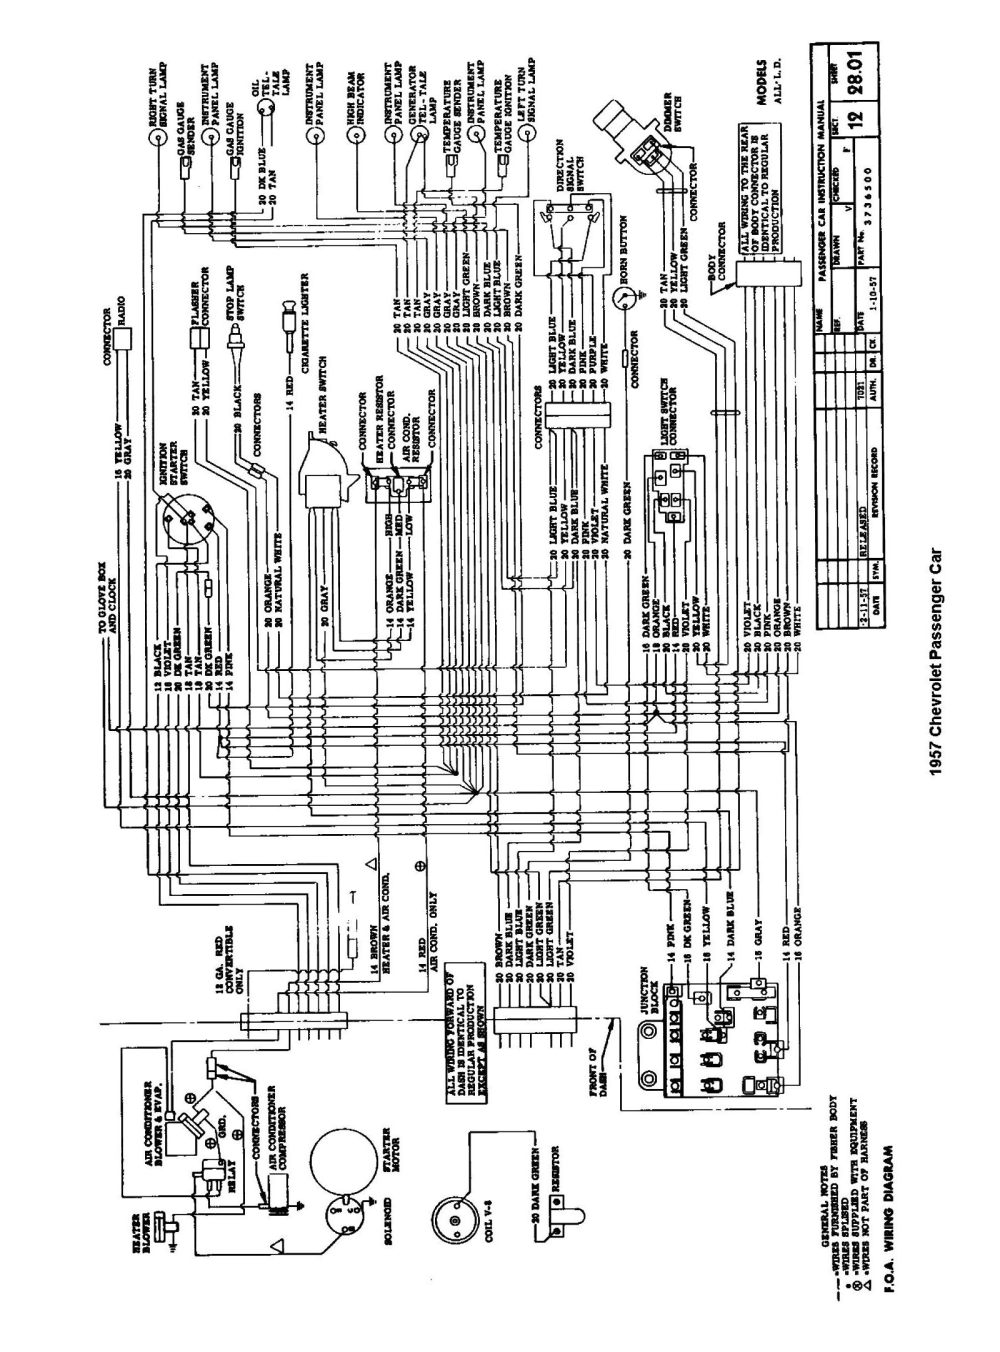 medium resolution of 1980 chevy luv wiring diagram